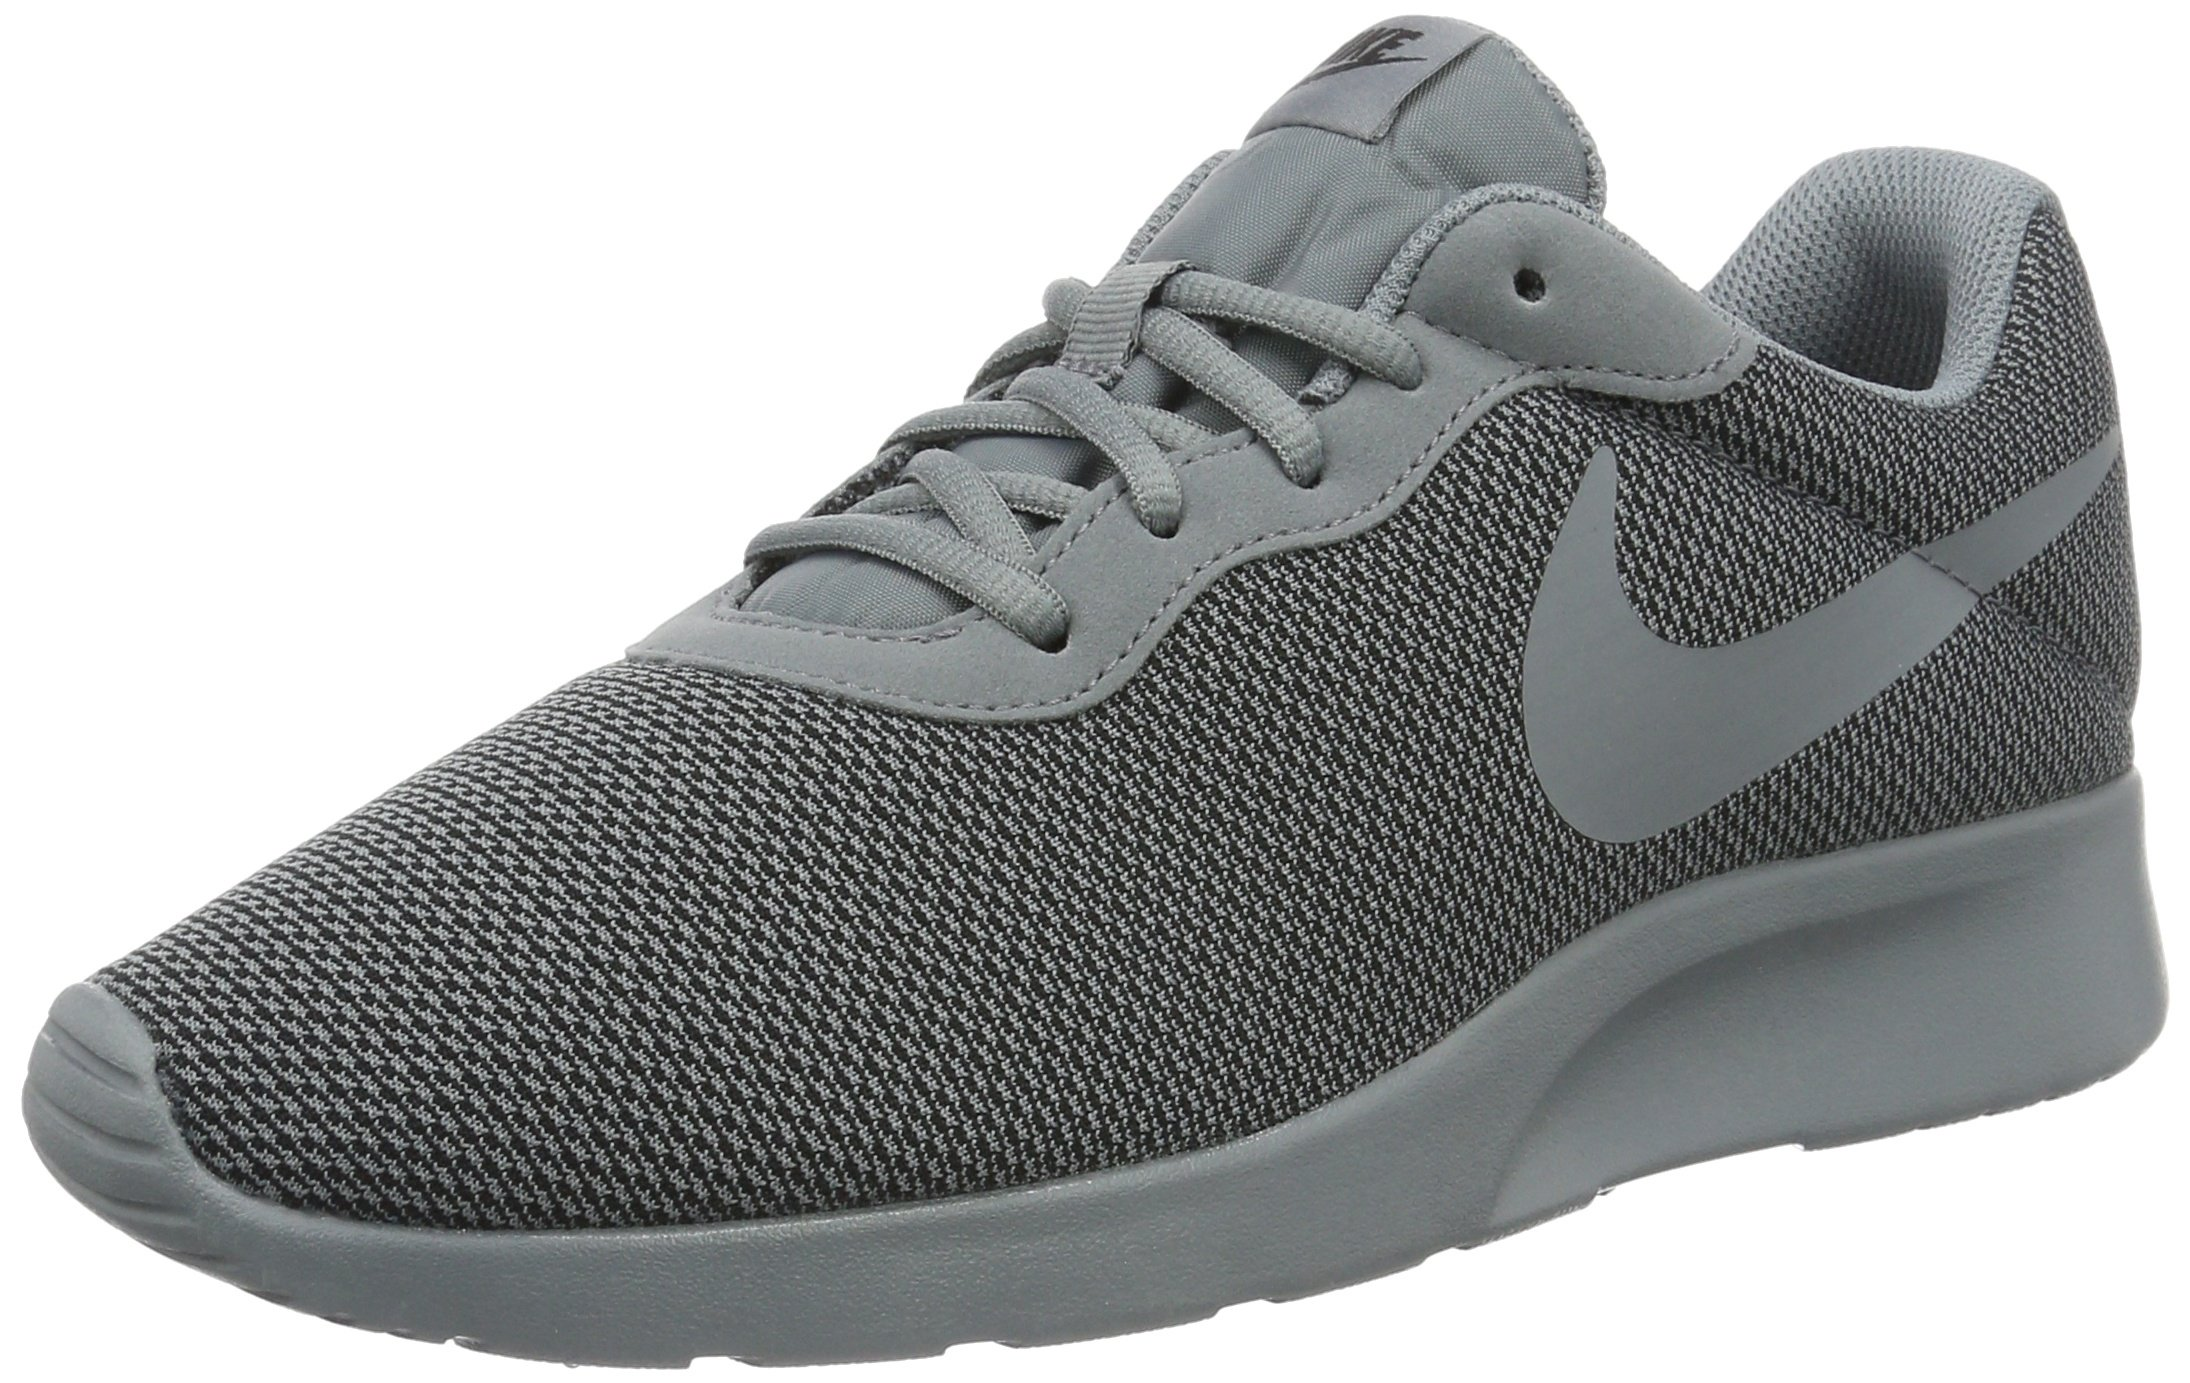 NIKE Mens Tanjun SE Cool Grey/Cool Grey-Black Size 10 by NIKE